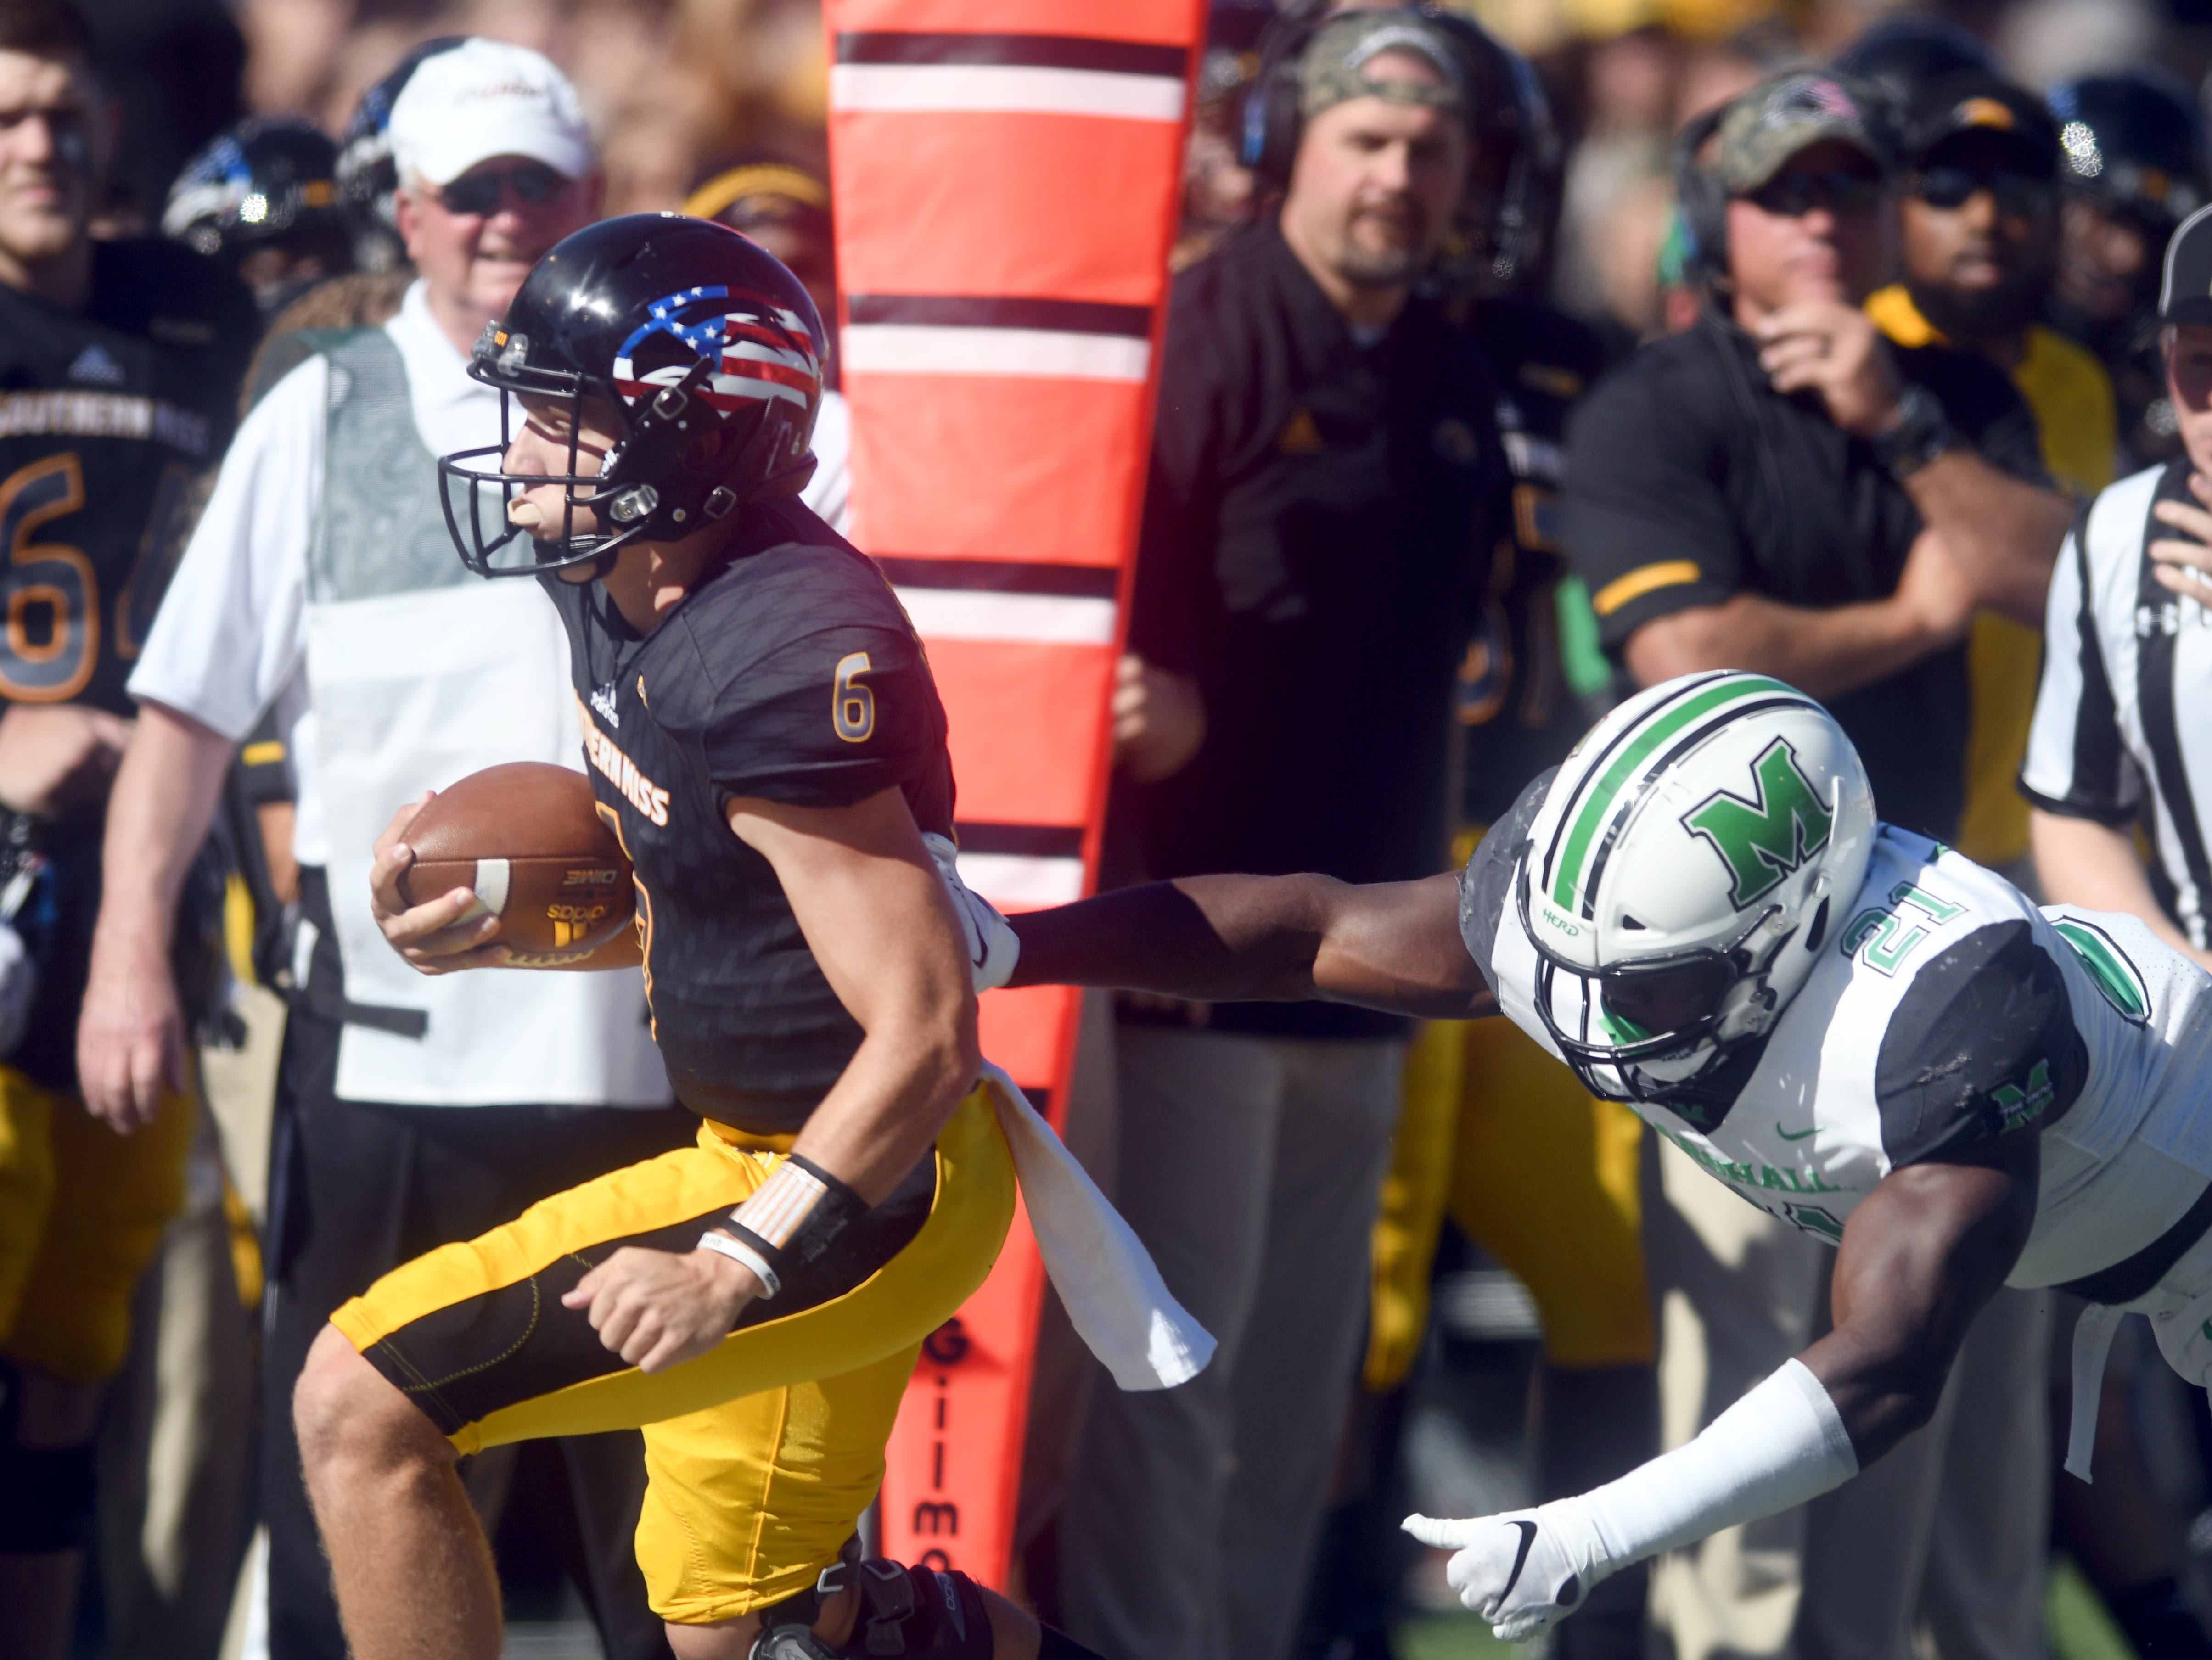 Southern Miss quarterback Tate Whatley carries the ball to the sideline in a game against Marshall at M.M. Roberts Stadium on Saturday, November 3, 2018.